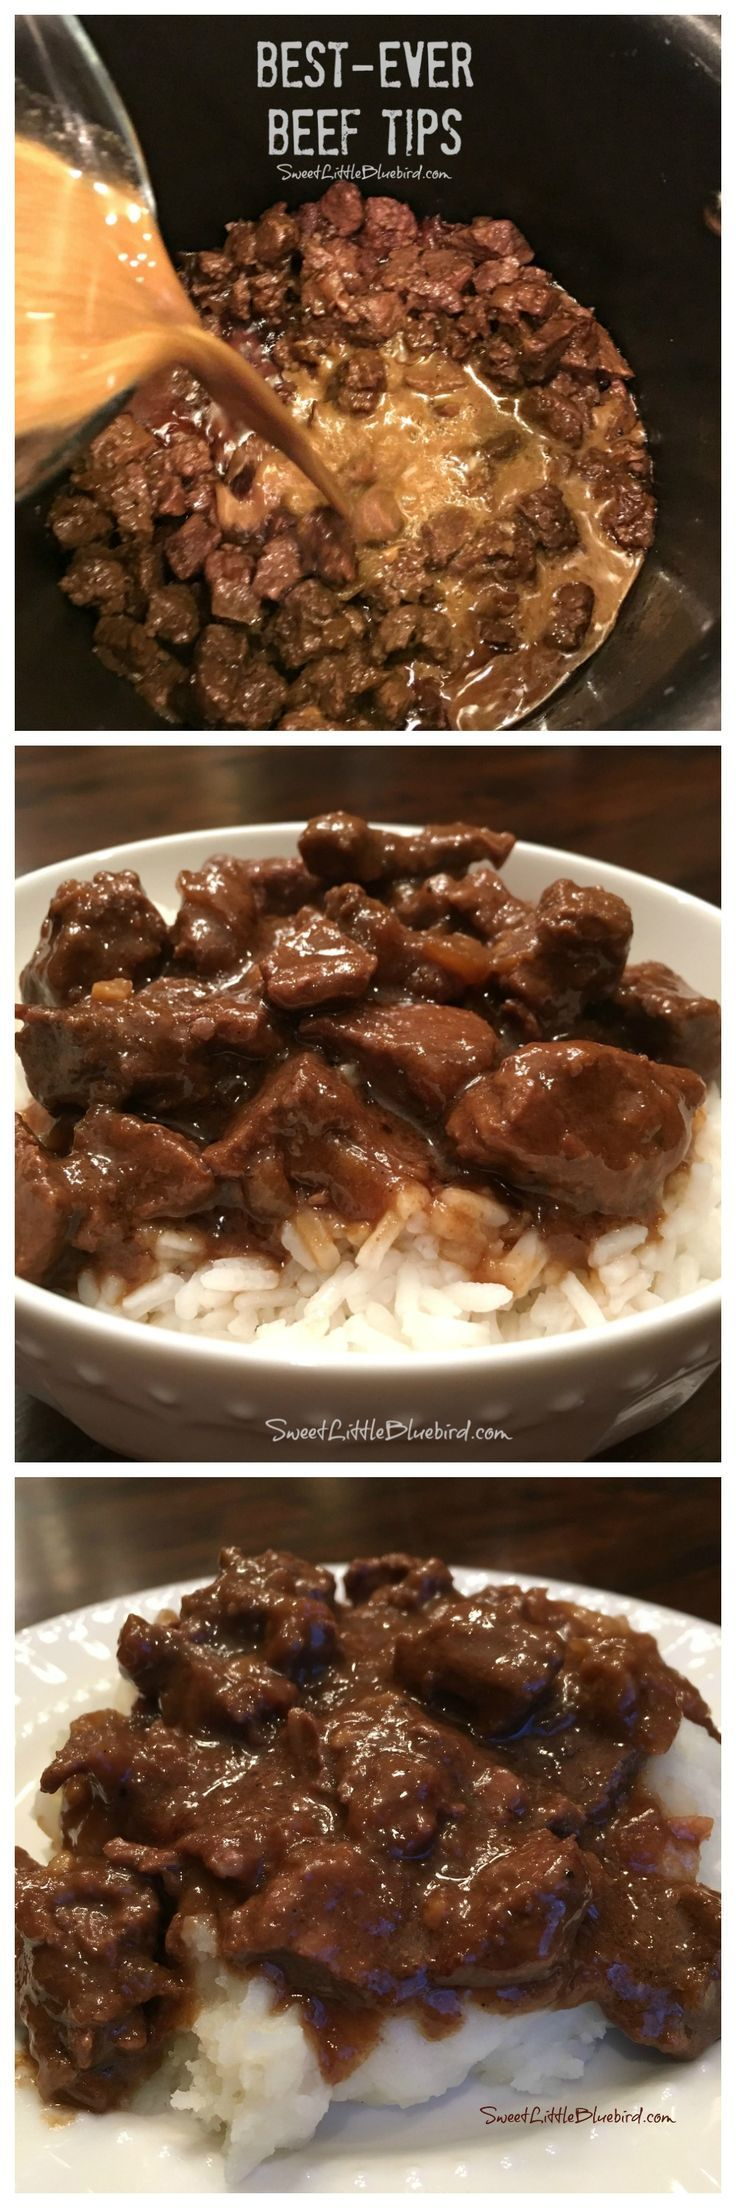 BEST-EVER BEEF TIPS- Tender beef cooked in a deliciously rich gravy, served over rice, mashed potatoes or egg noodles - a satisfying, filling meal the whole family will love. Simple to make comfort food that's easy to adapt to your taste!